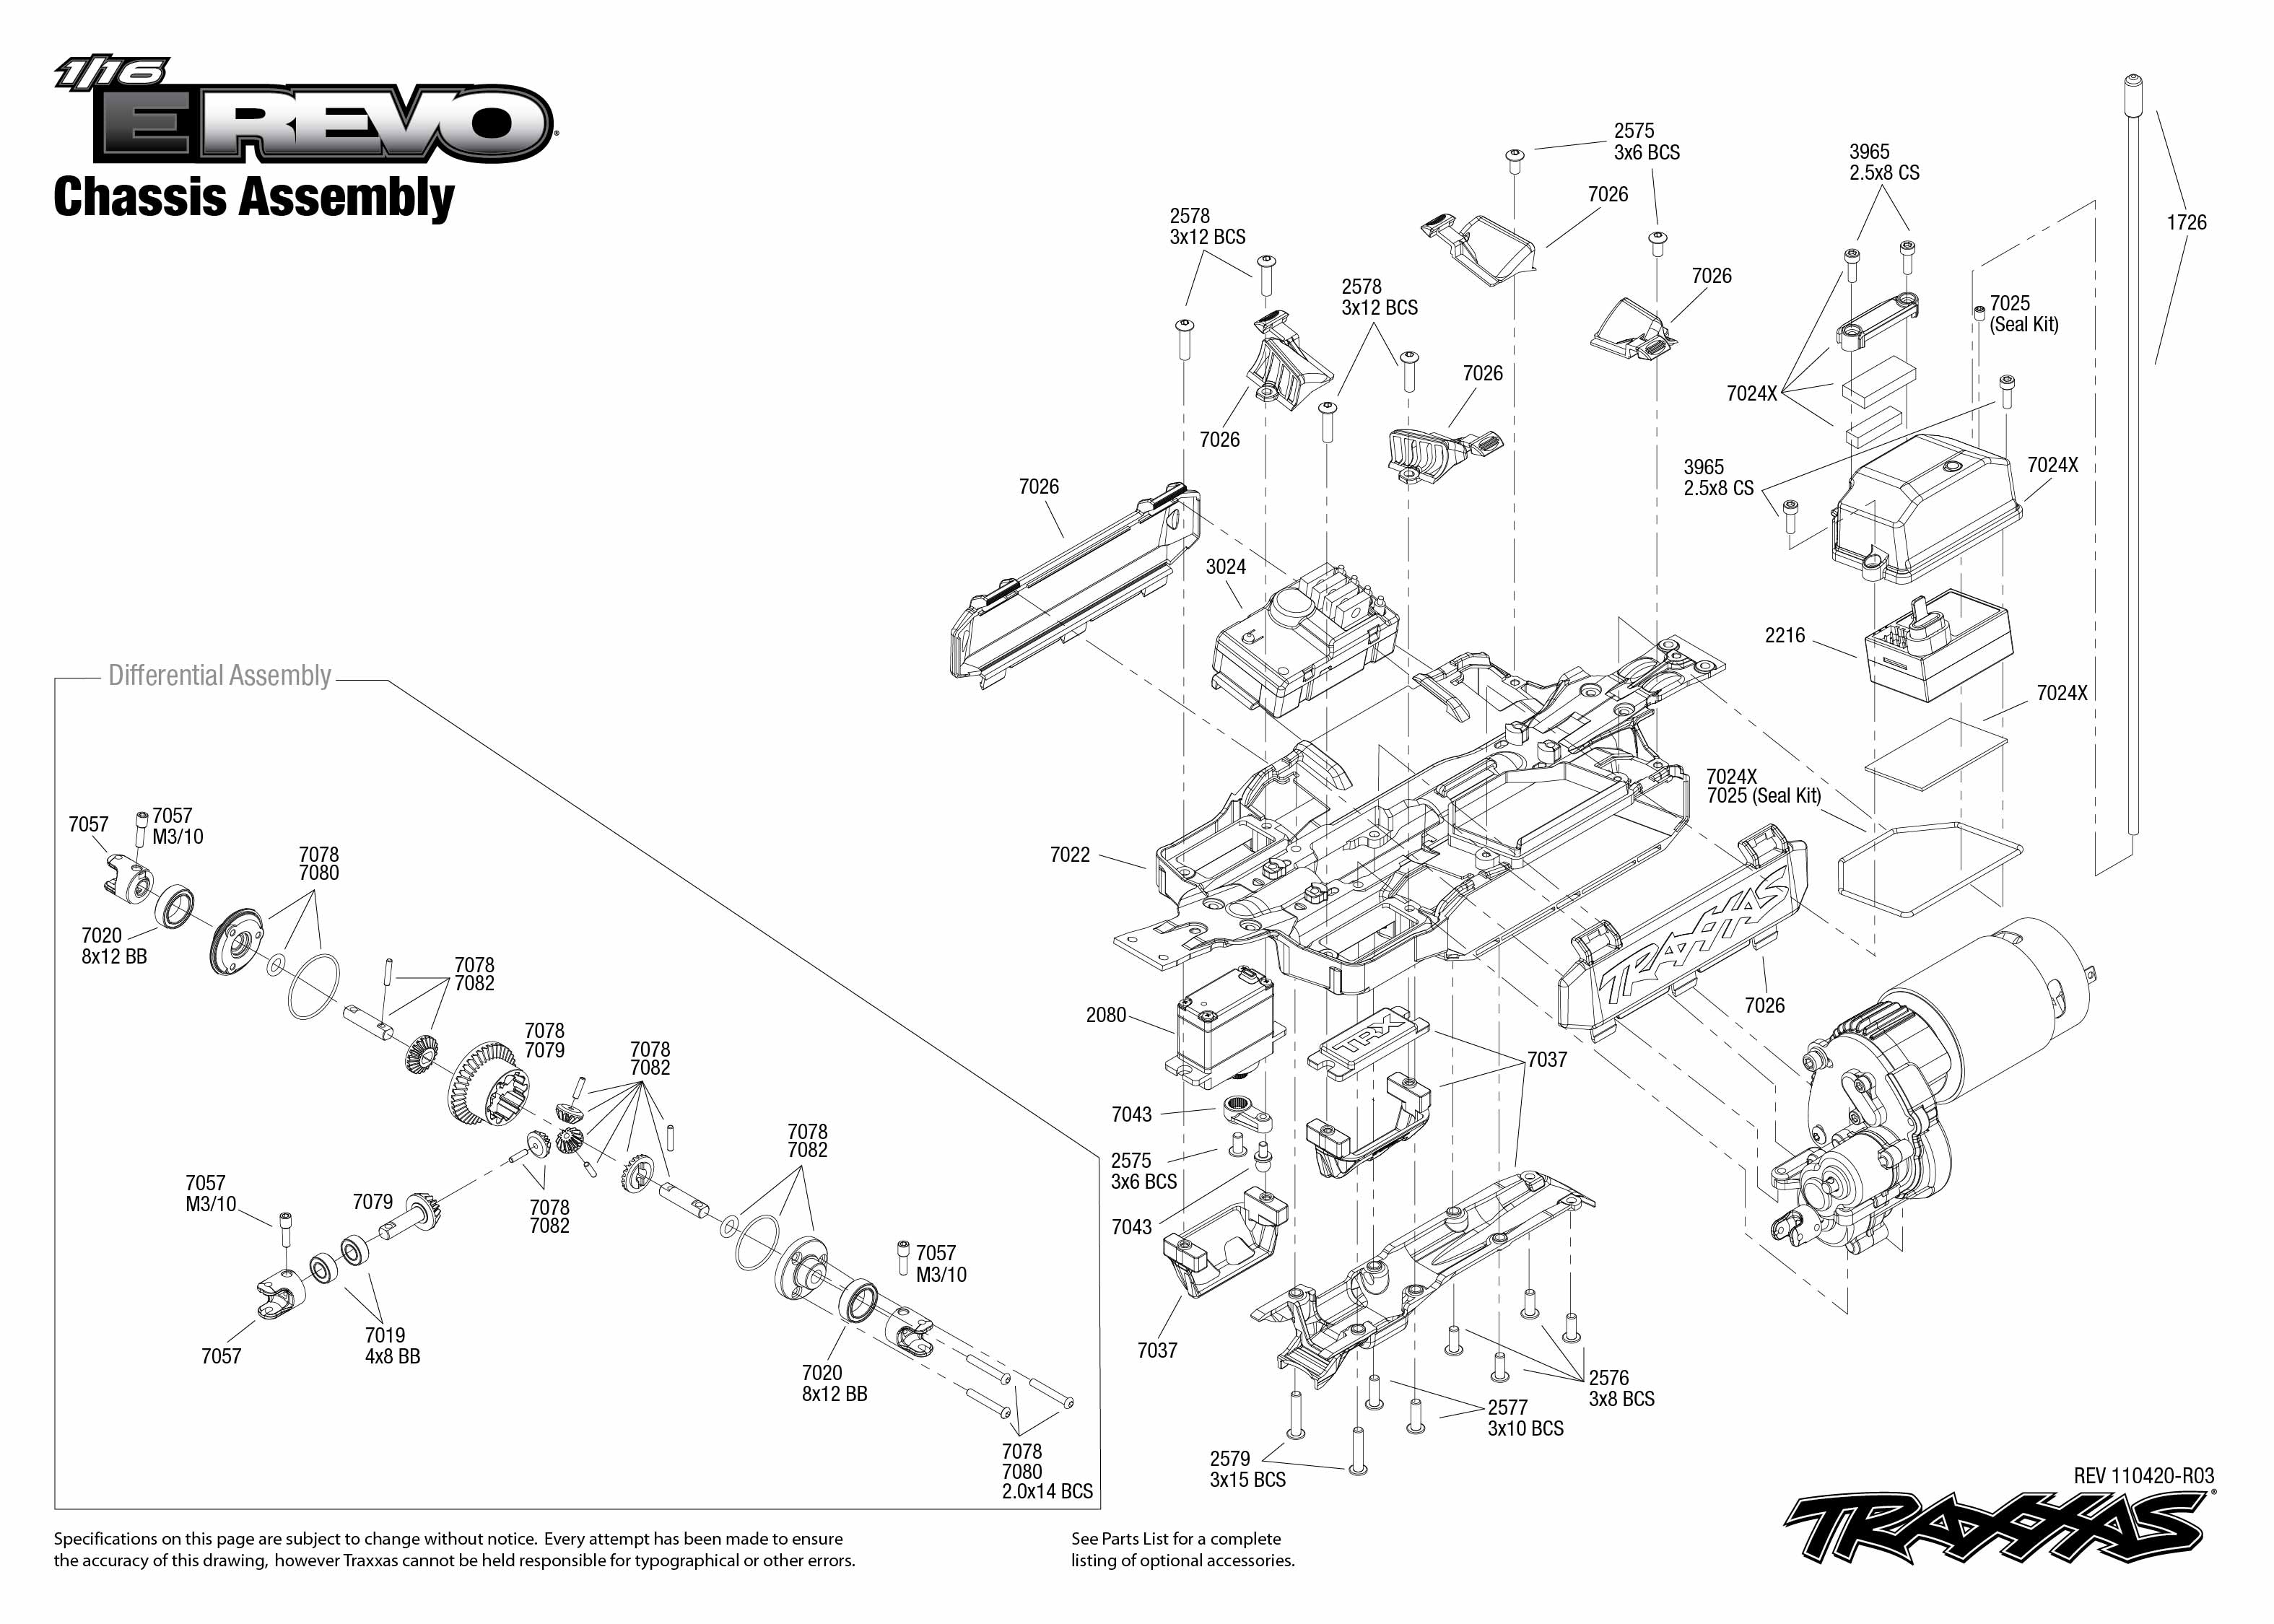 7105 Front Exploded View 116 E Revo Brushed W Titan 550 12T Motor Hobbydel also 1 10 Traxxas Slash 4x4 Diagram as well St prod also Traxxas 6518 Wiring Diagram as well Slash 4x4 Parts Diagram. on traxxas 1 16 e revo parts diagram